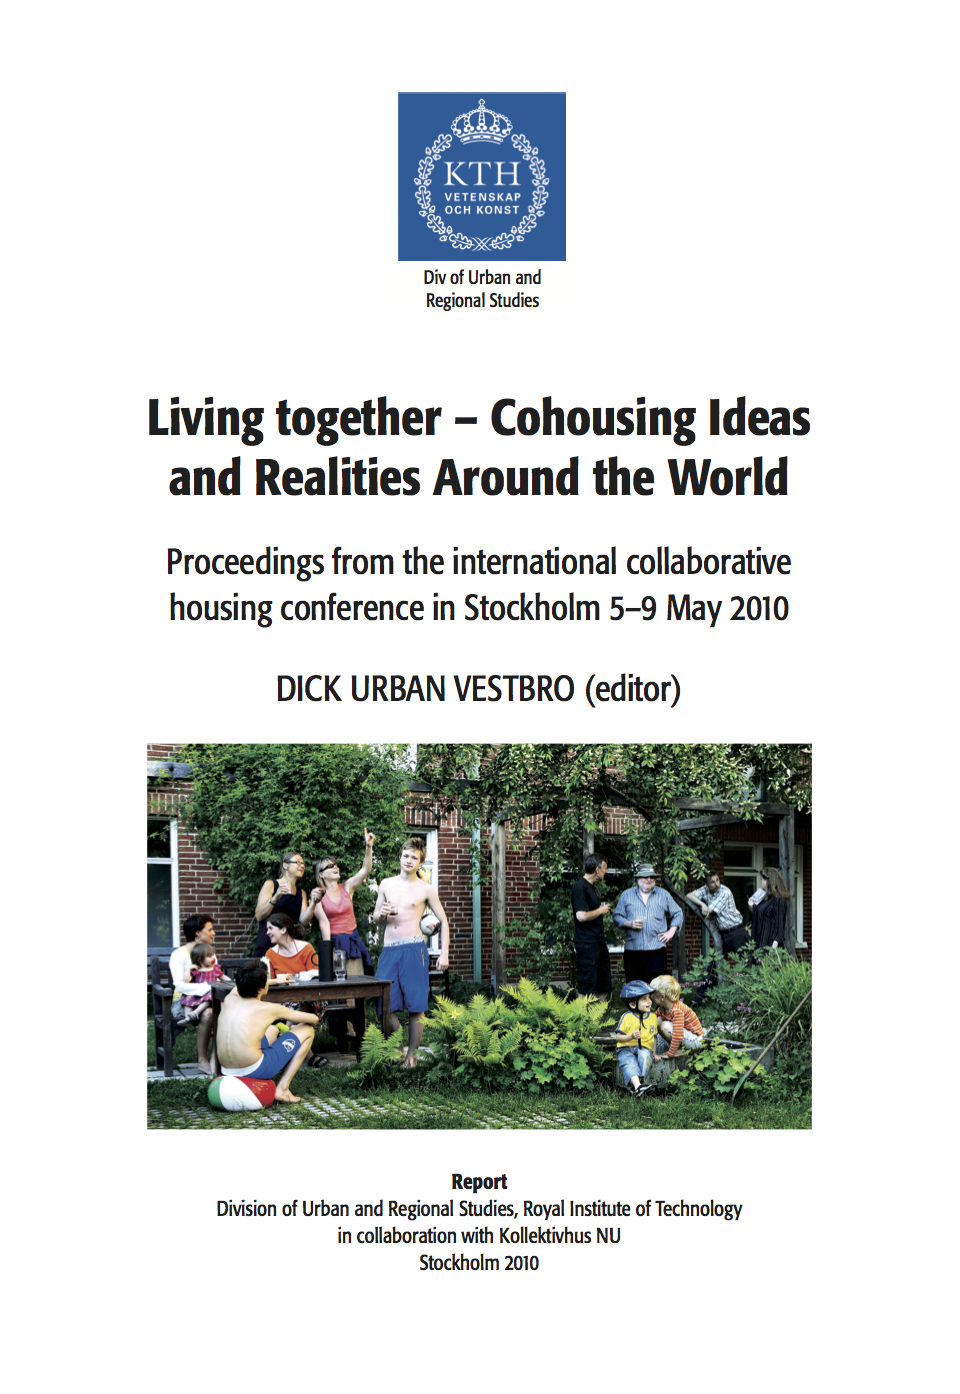 Our 2010 International Conference Proceedings now available electronically